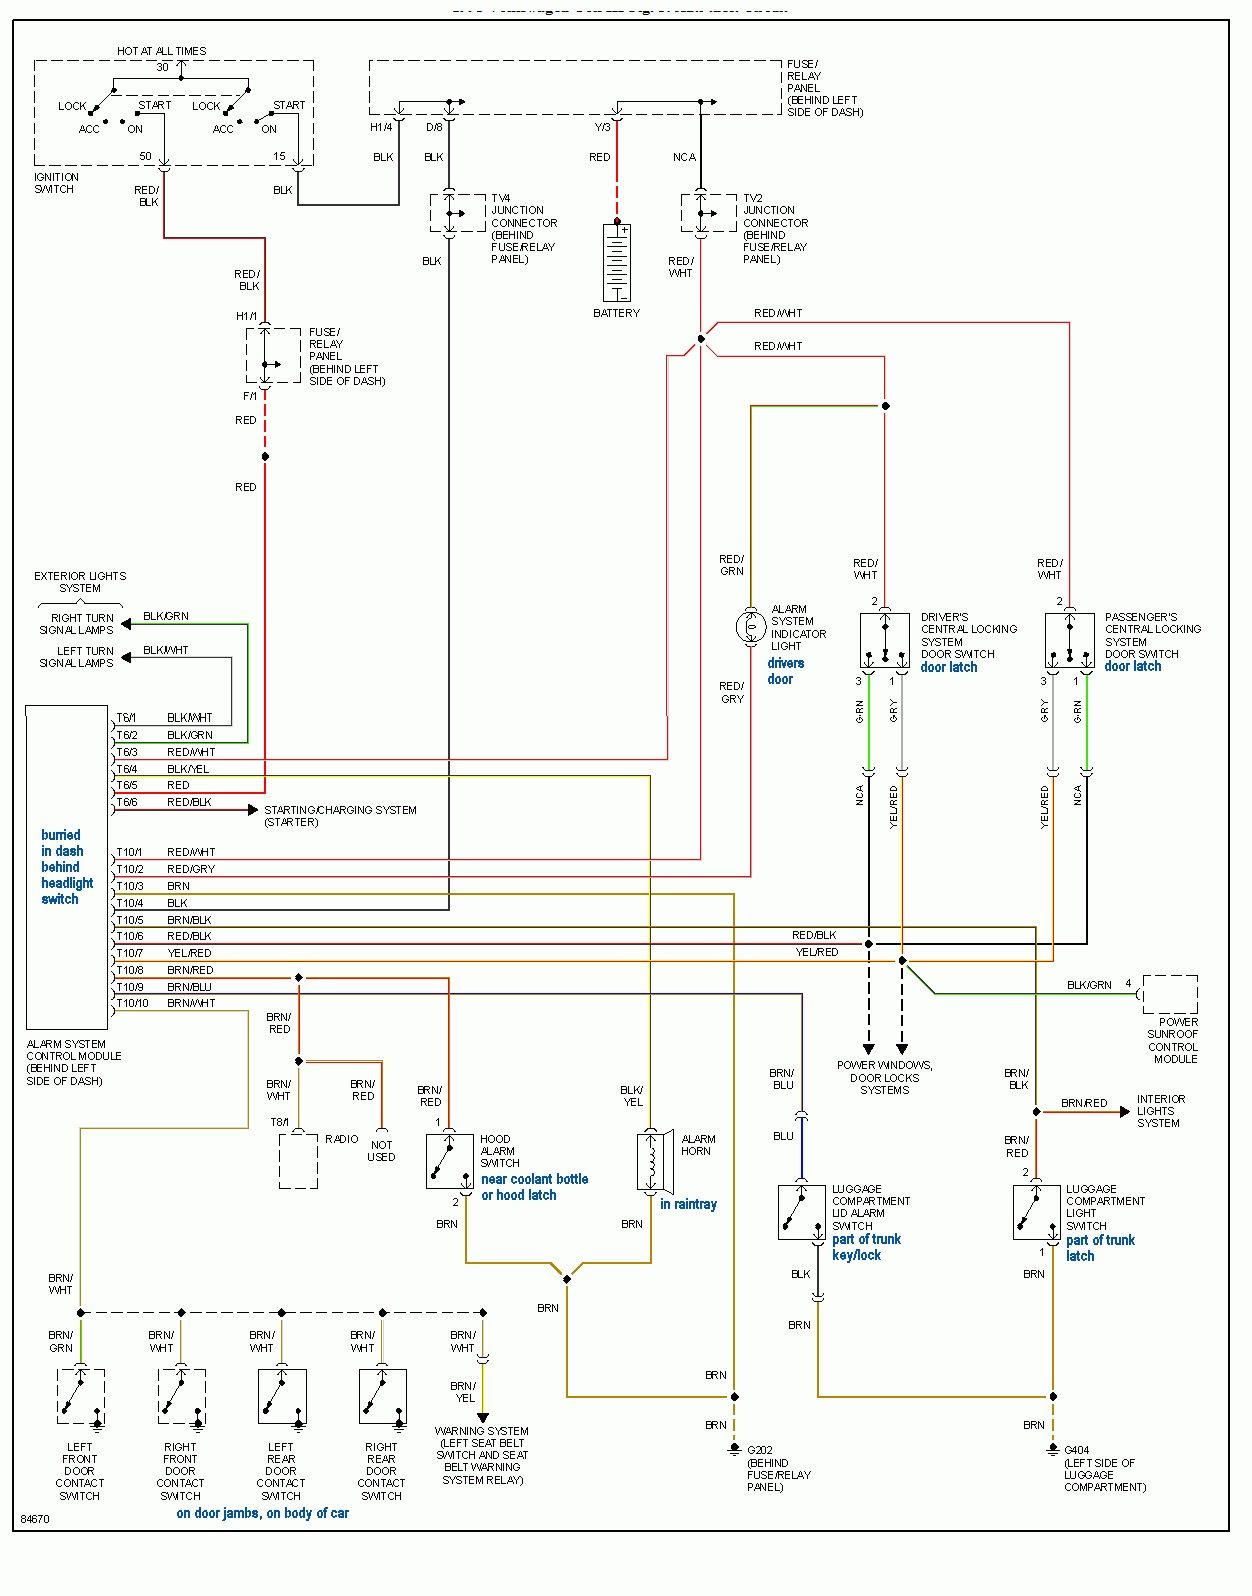 Unique Audi A4 Central Locking Pump Wiring Diagram #diagram  #diagramtemplate #diagramsample | Audi a4, Diagram, Ford transitPinterest